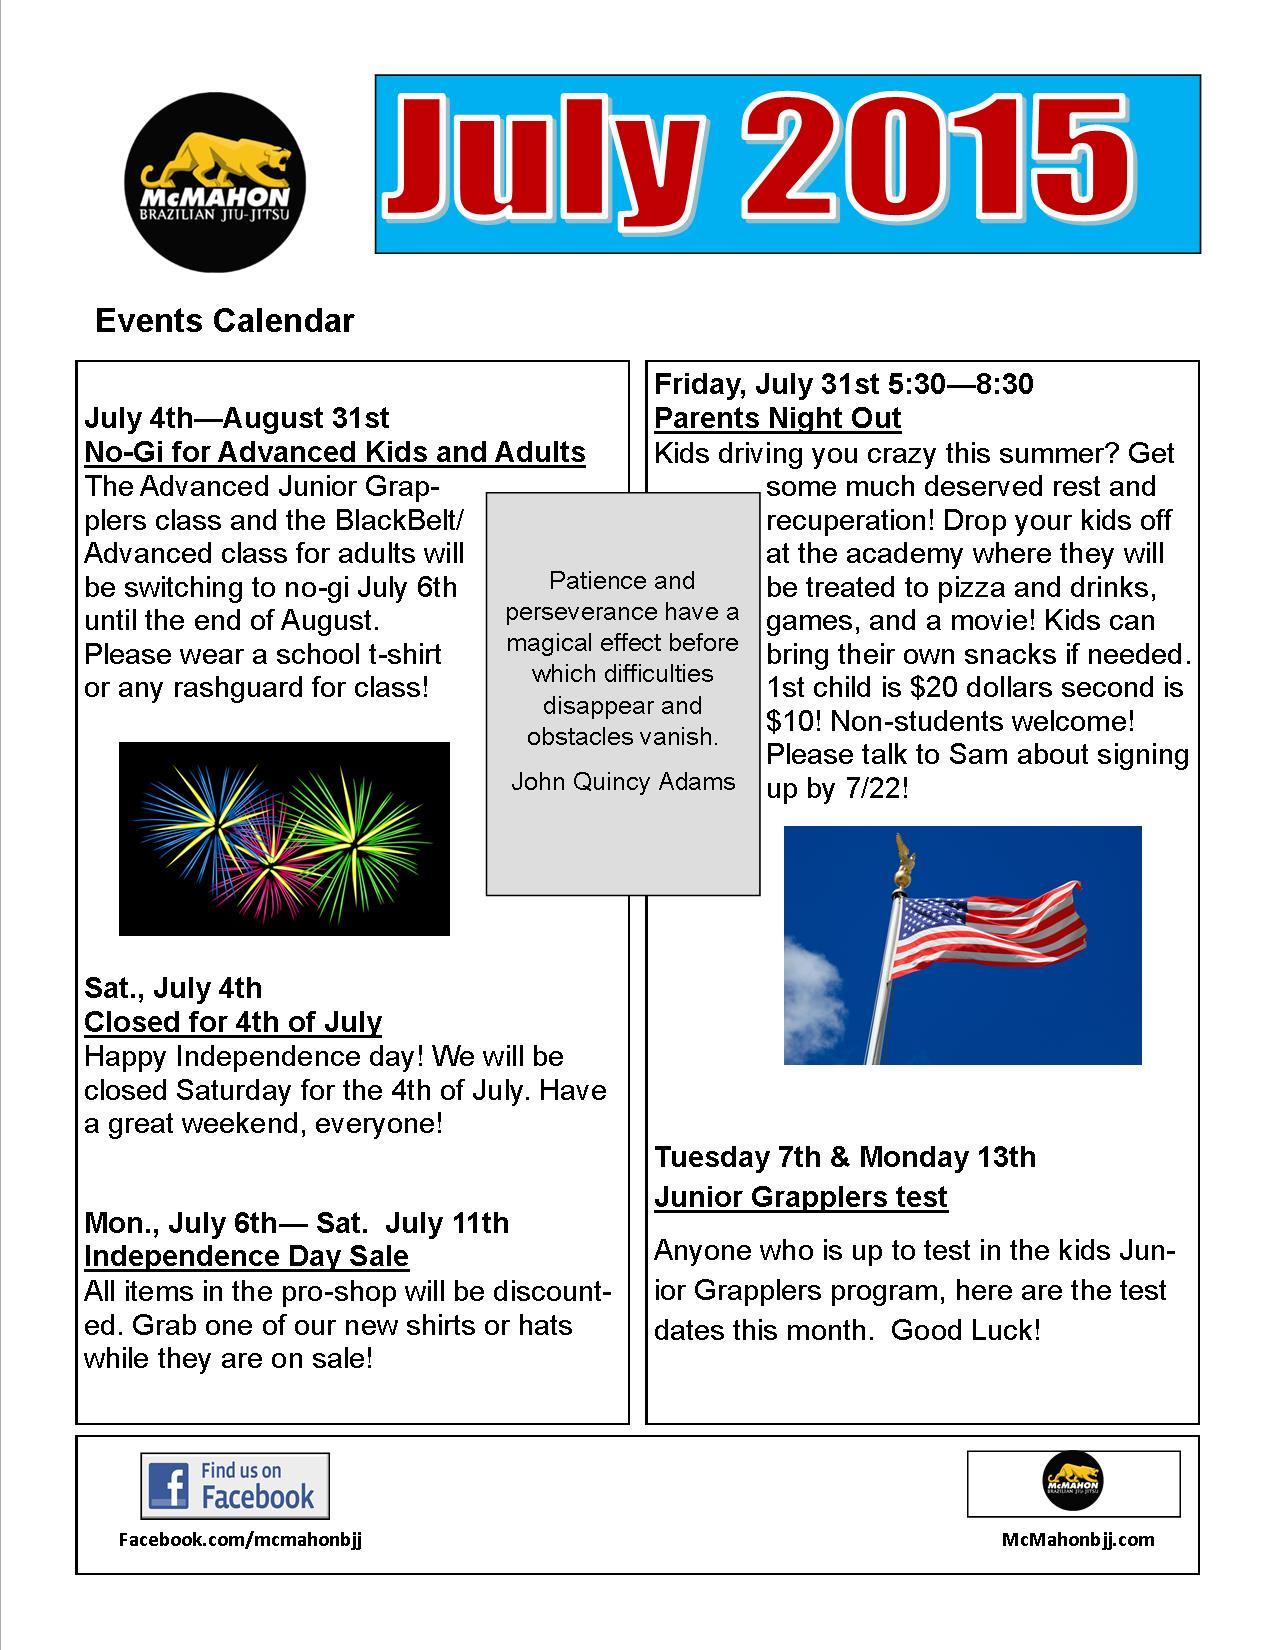 July 2015 events jpeg